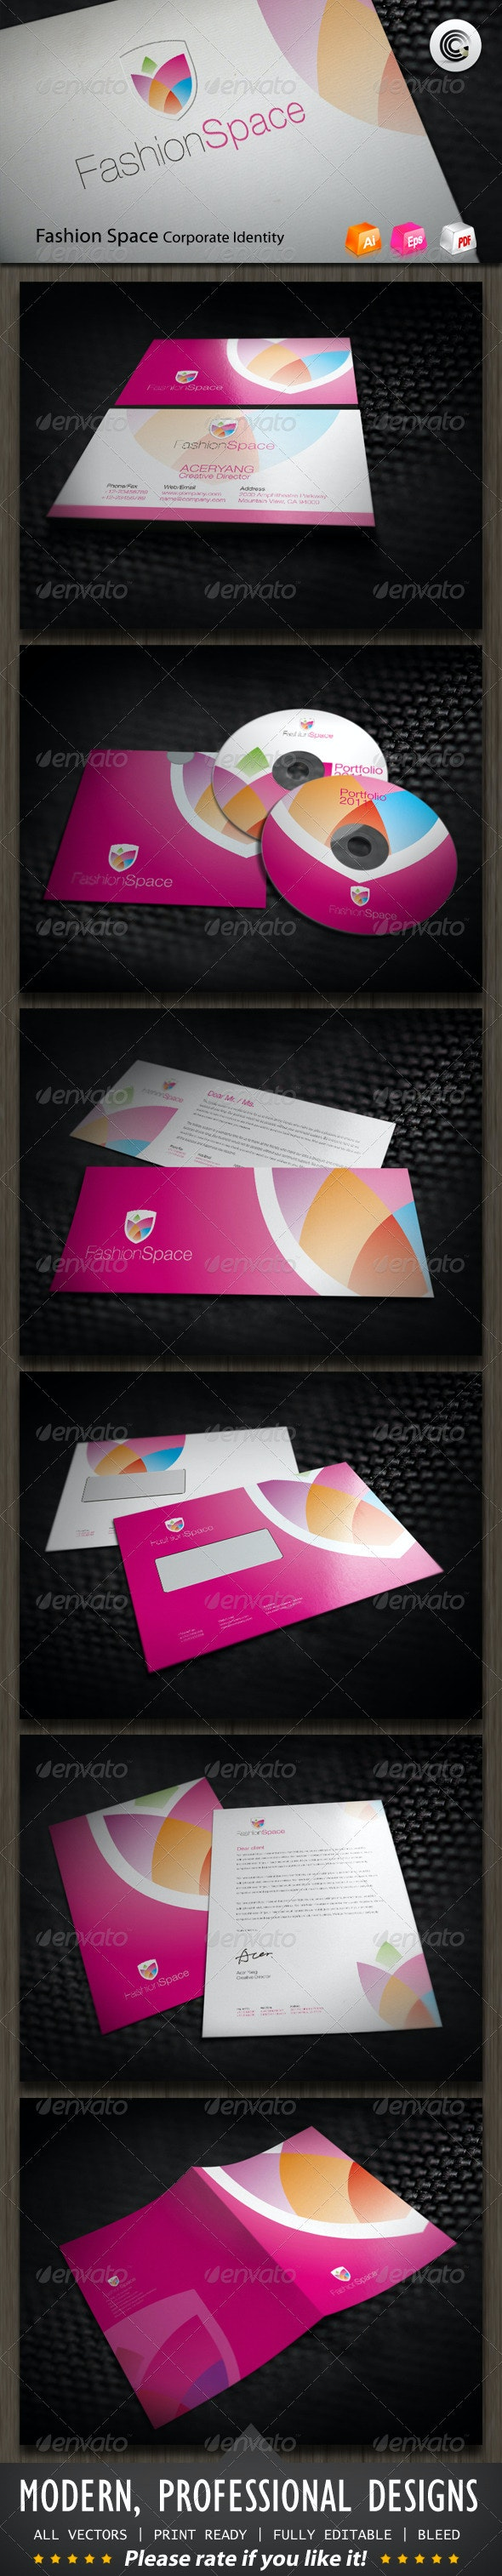 Fashion Space Corporate Identity - Stationery Print Templates